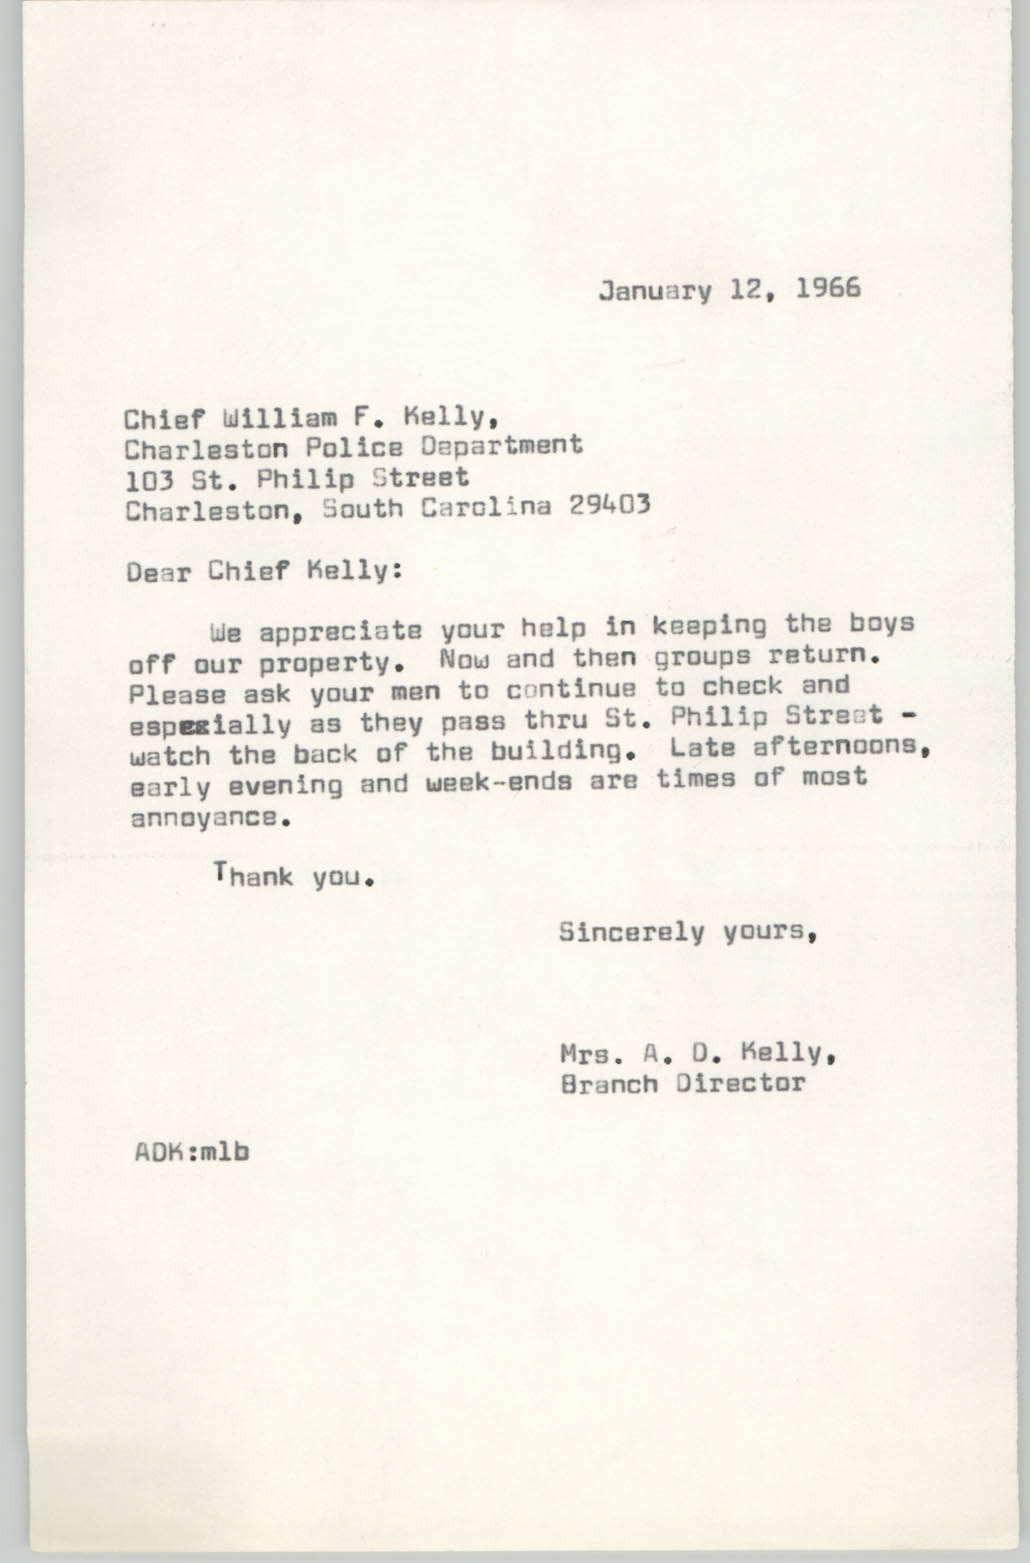 Letter from Anna D. Kelly to William F. Kelly, January 12, 1966